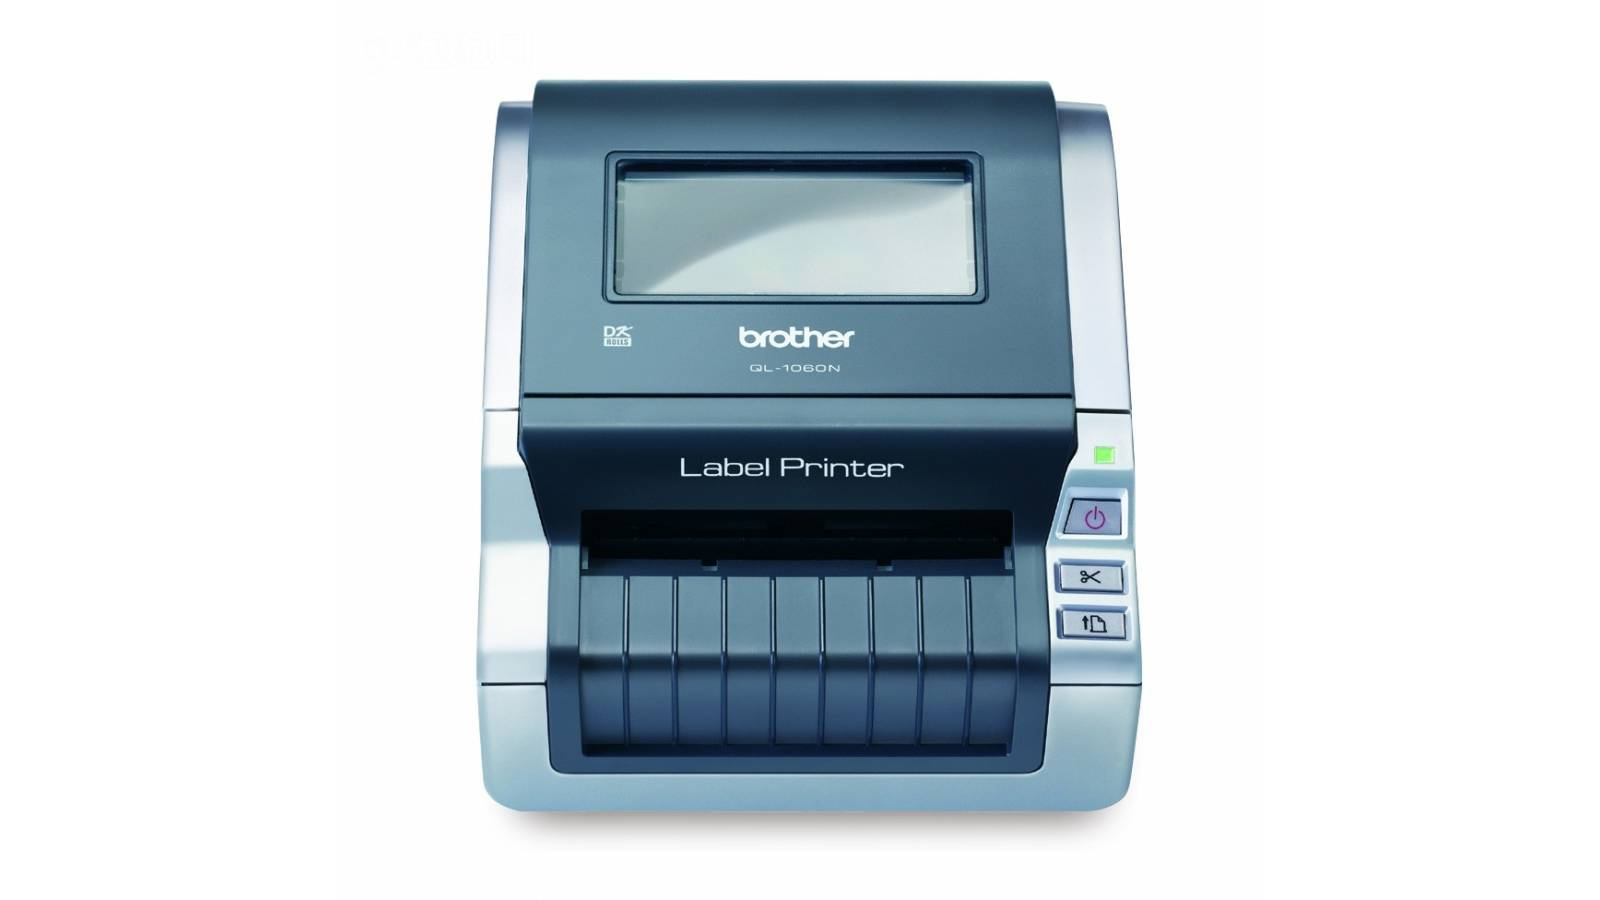 Impresora de etiquetas Brother QL-1060N